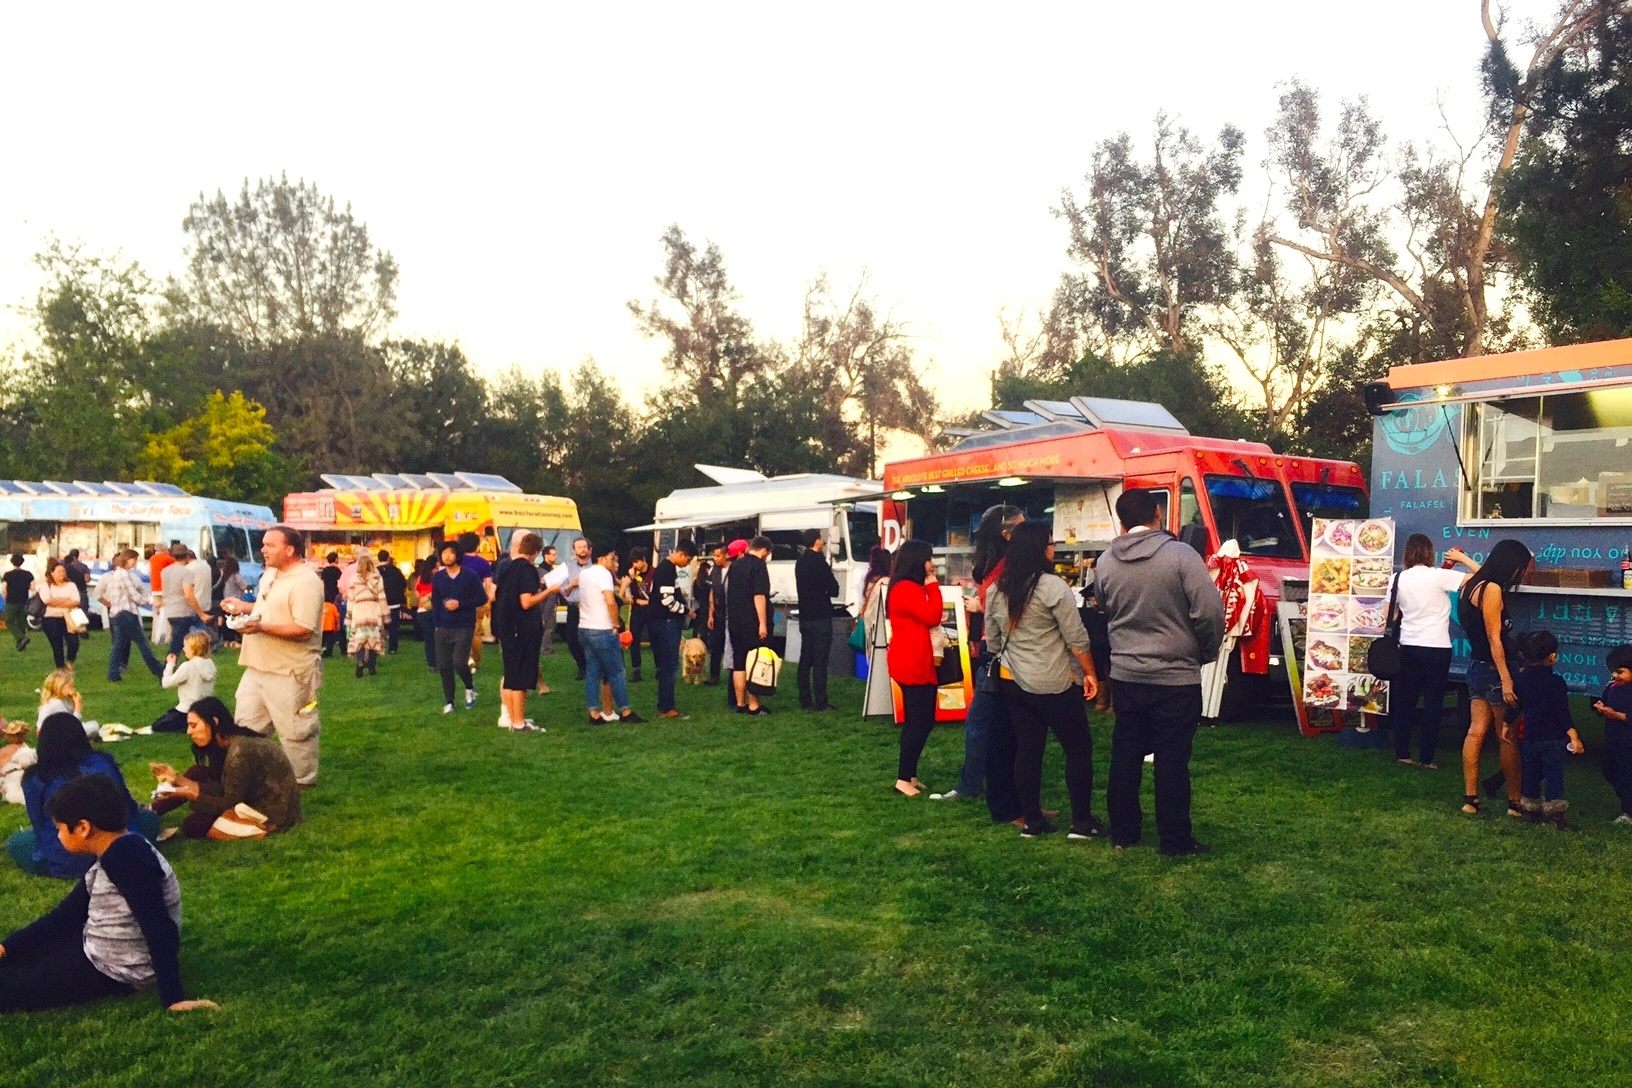 Just a sliver of the nearly 2 dozen food trucks